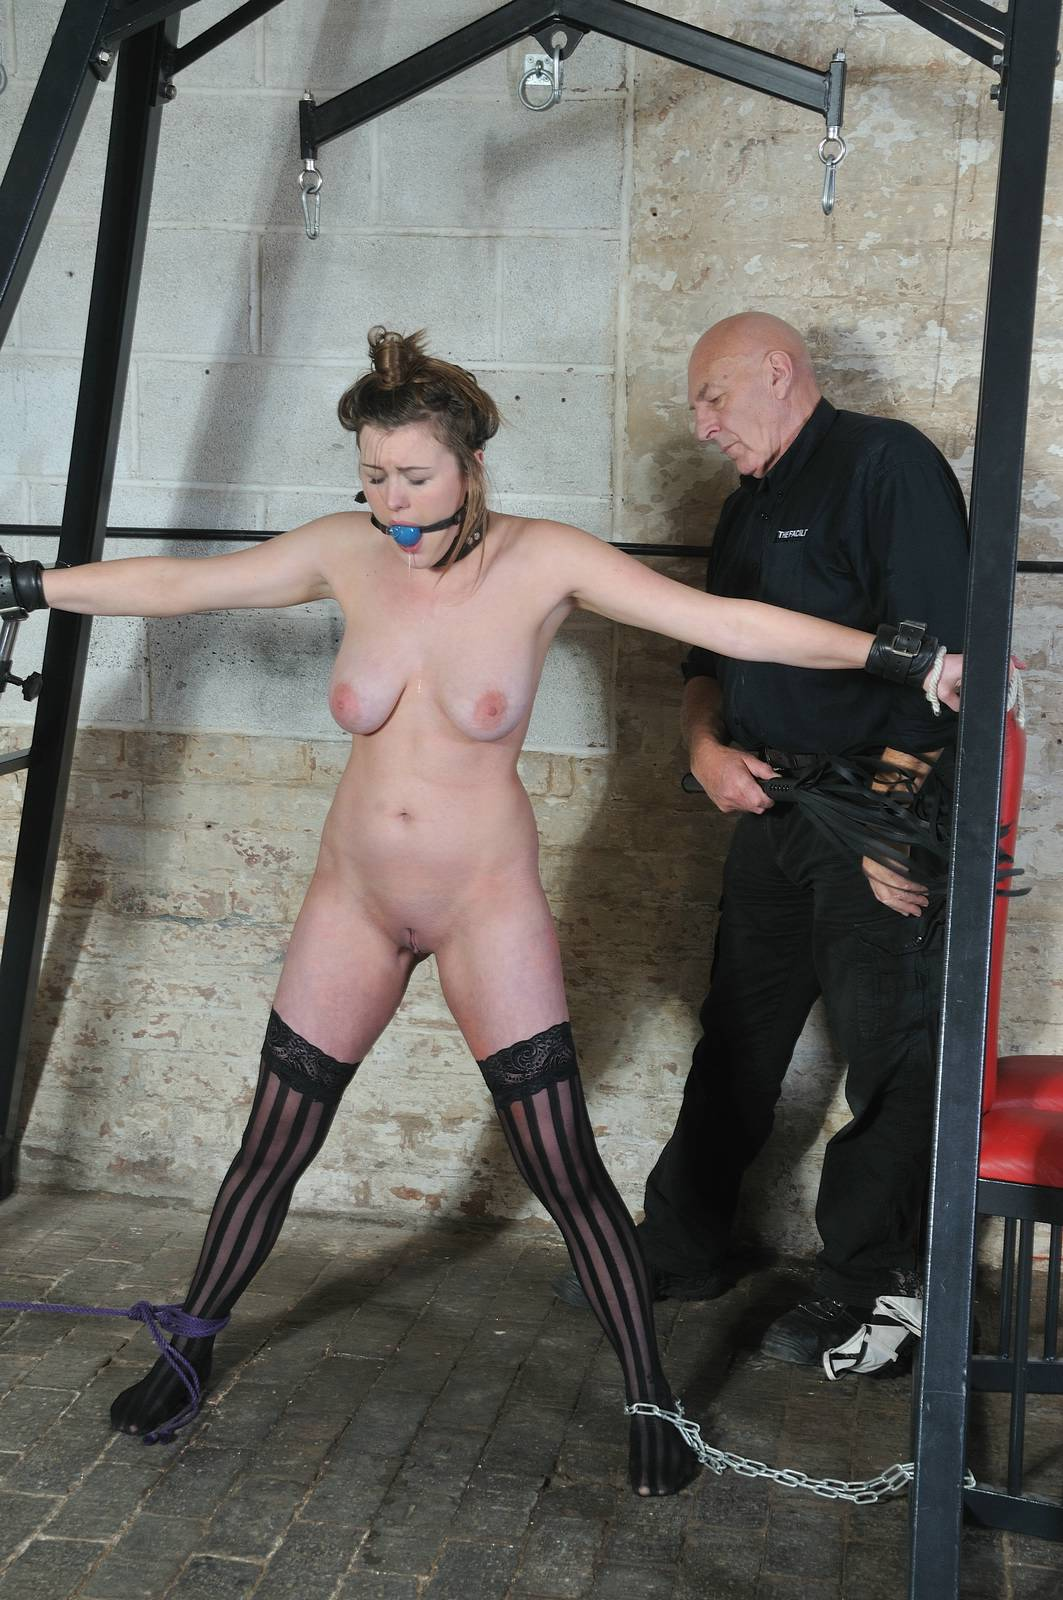 Lesbian taylor hearts extreme humiliation and punishment bds - 1 5